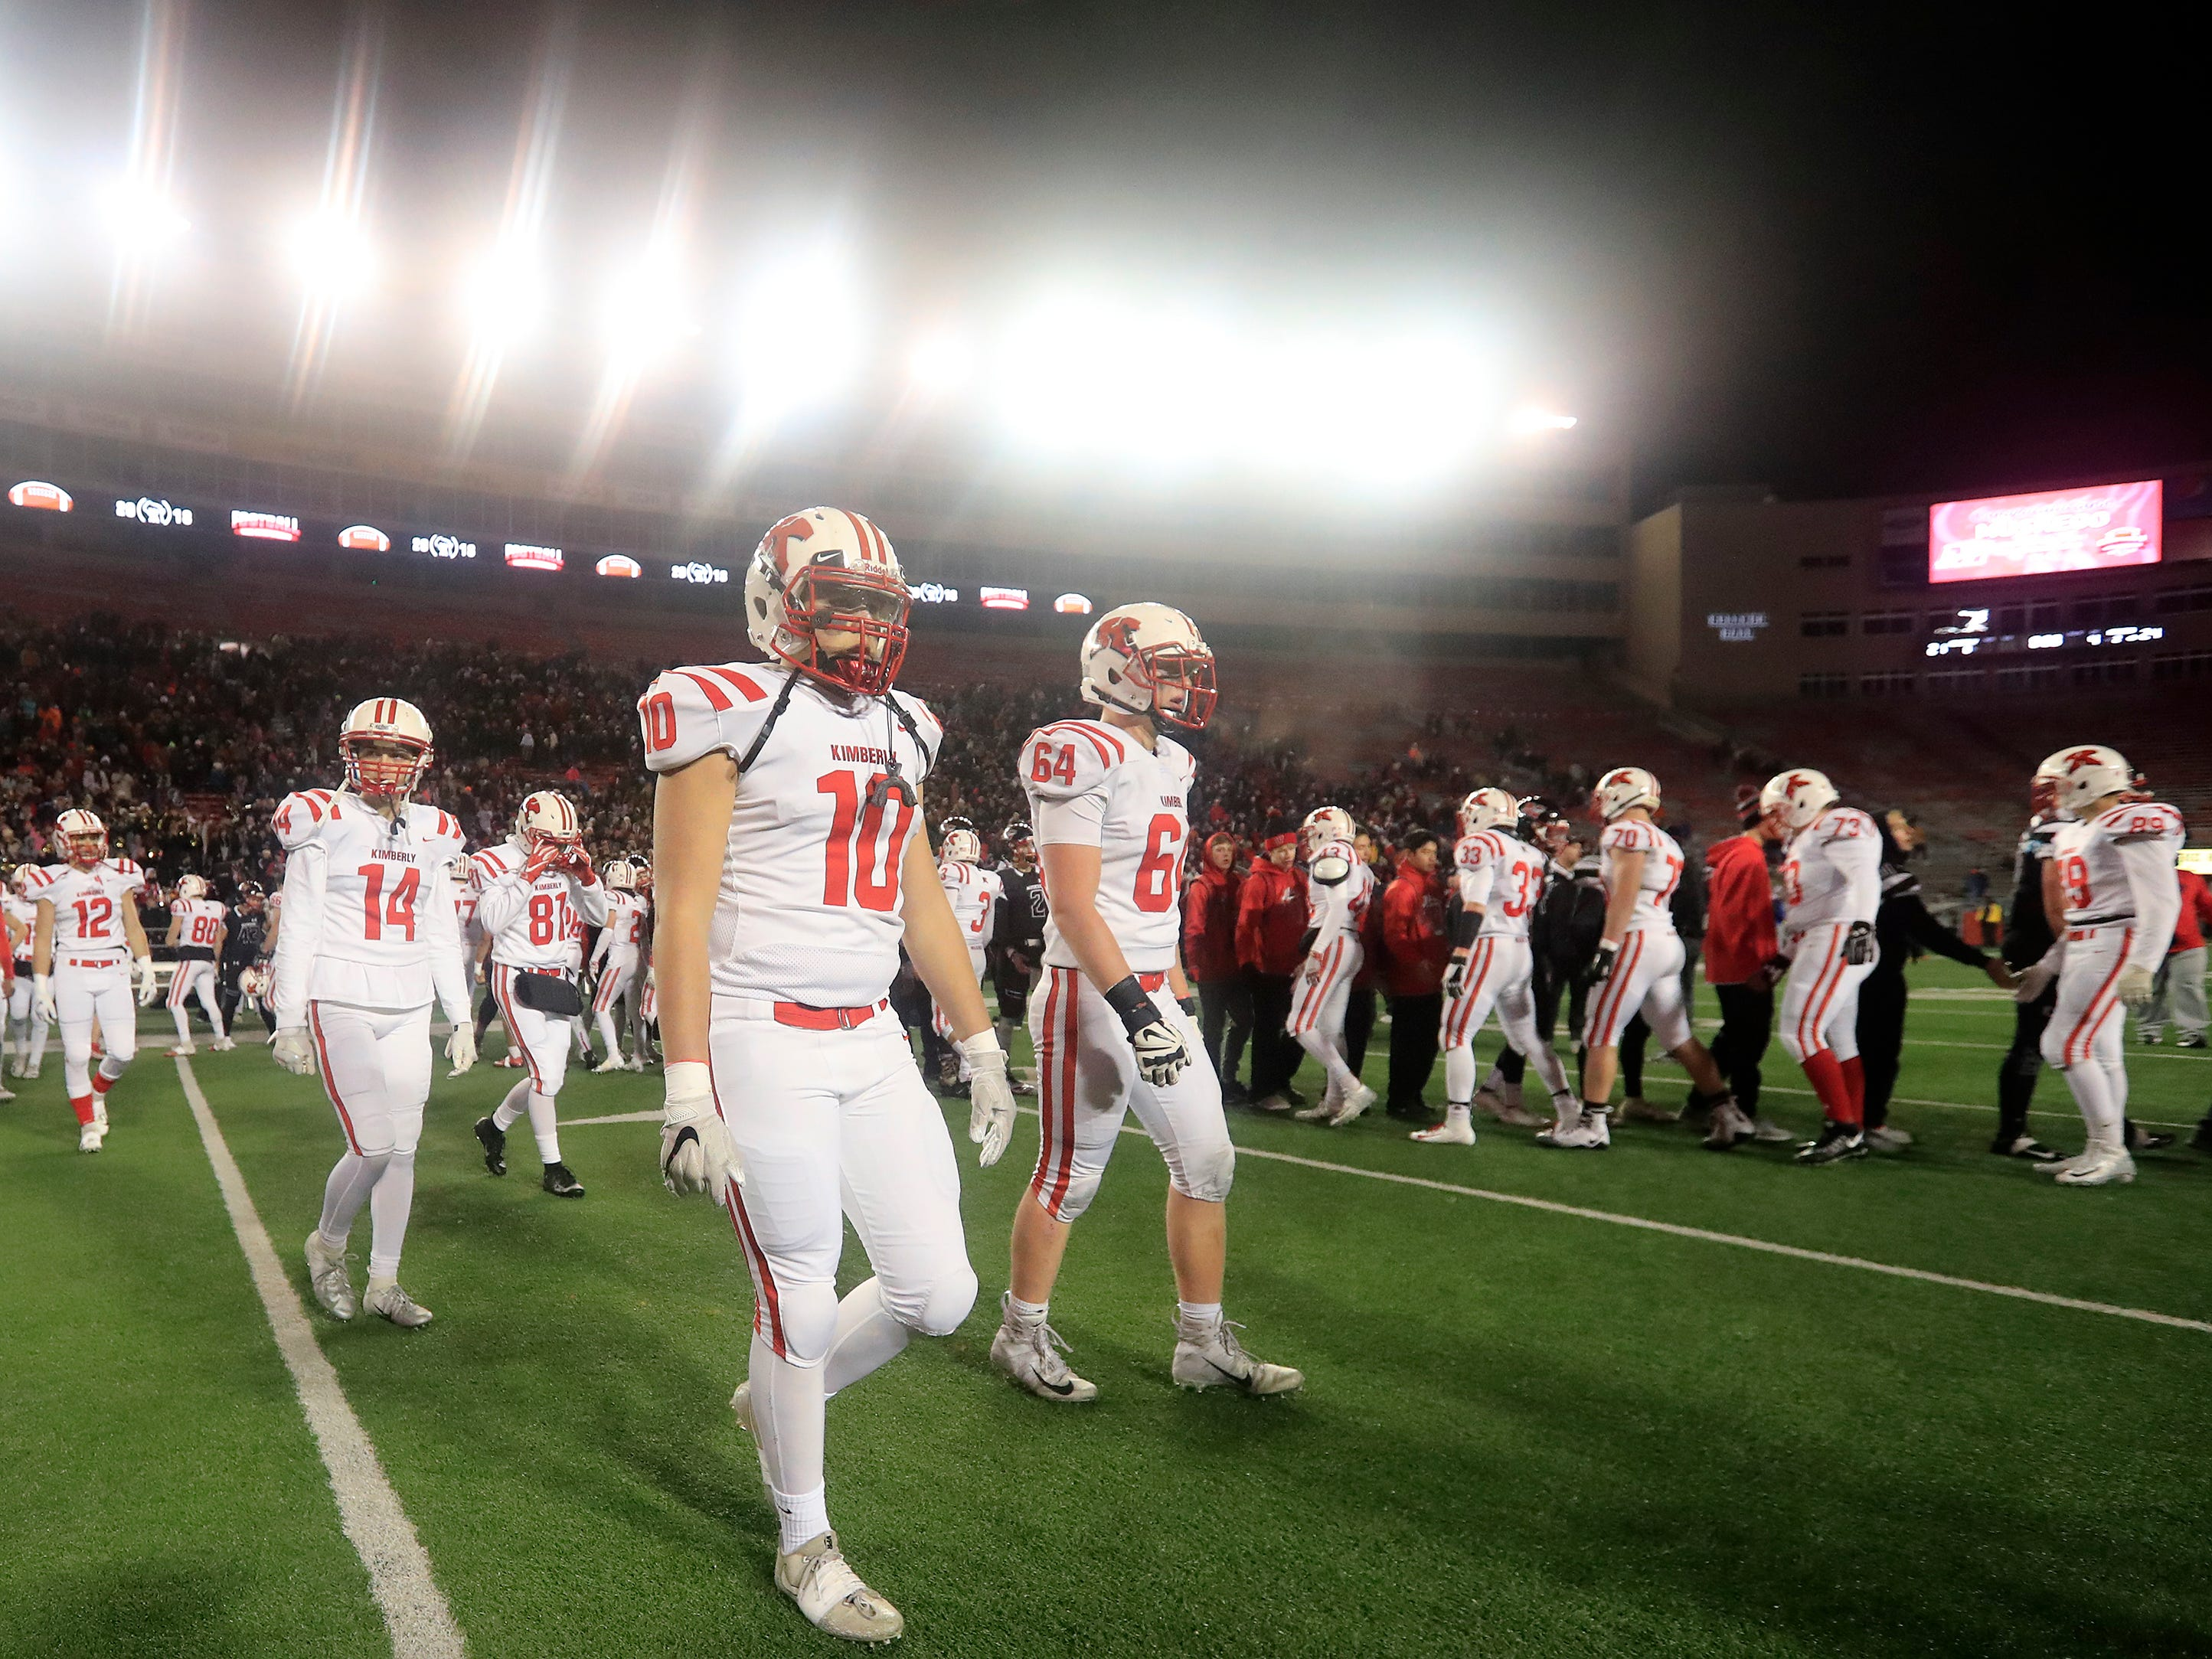 Kimberly's Gavin McBrair (10) walks off the field after the Papermakers lost to Muskego in the WIAA Division 1 championship game at Camp Randall Stadium on Friday, November 16, 2018 in Madison, Wis.